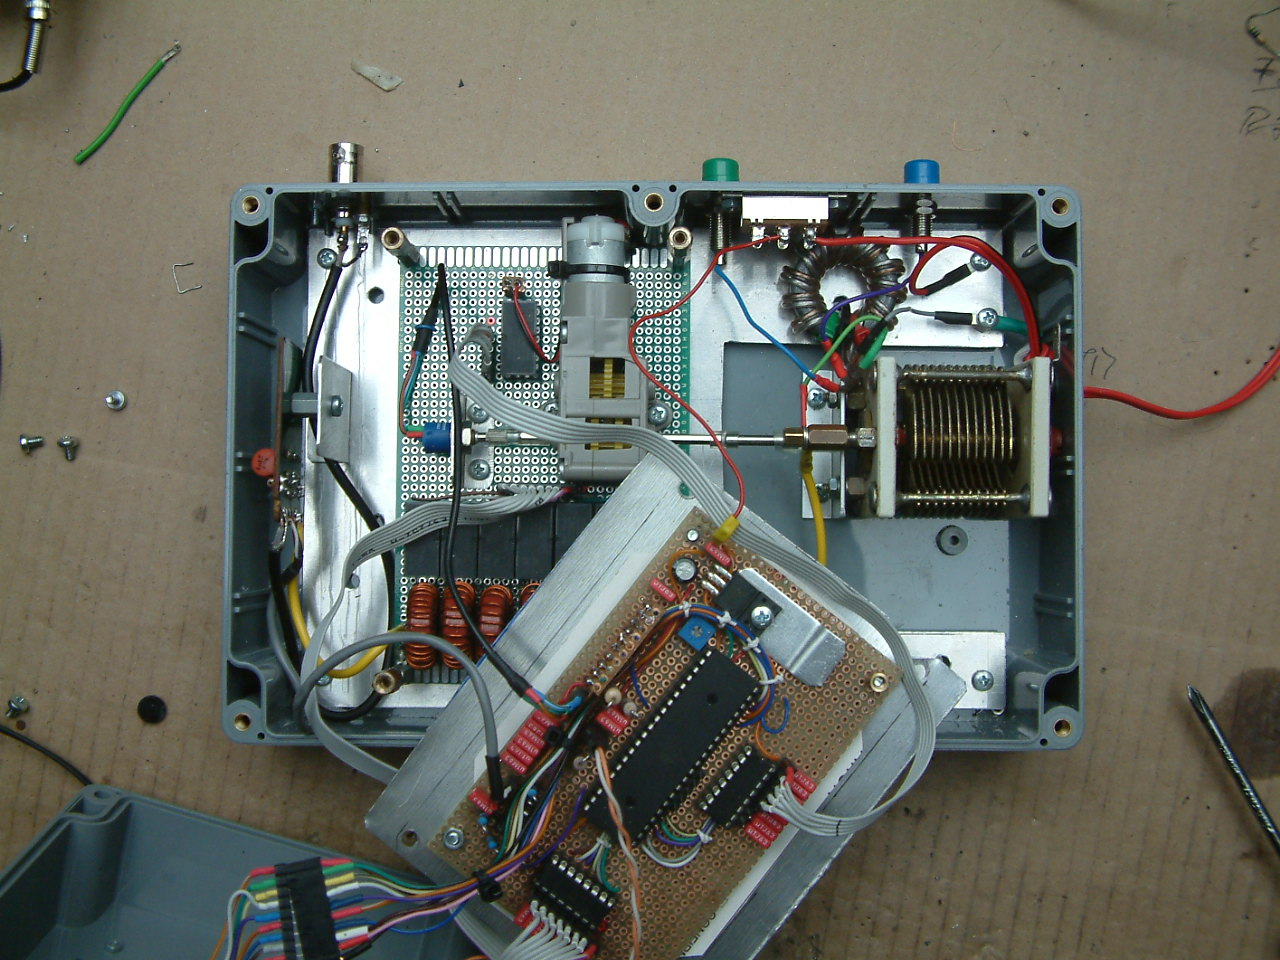 DK7IH semi automatic antenna tuner V2 (inside view)